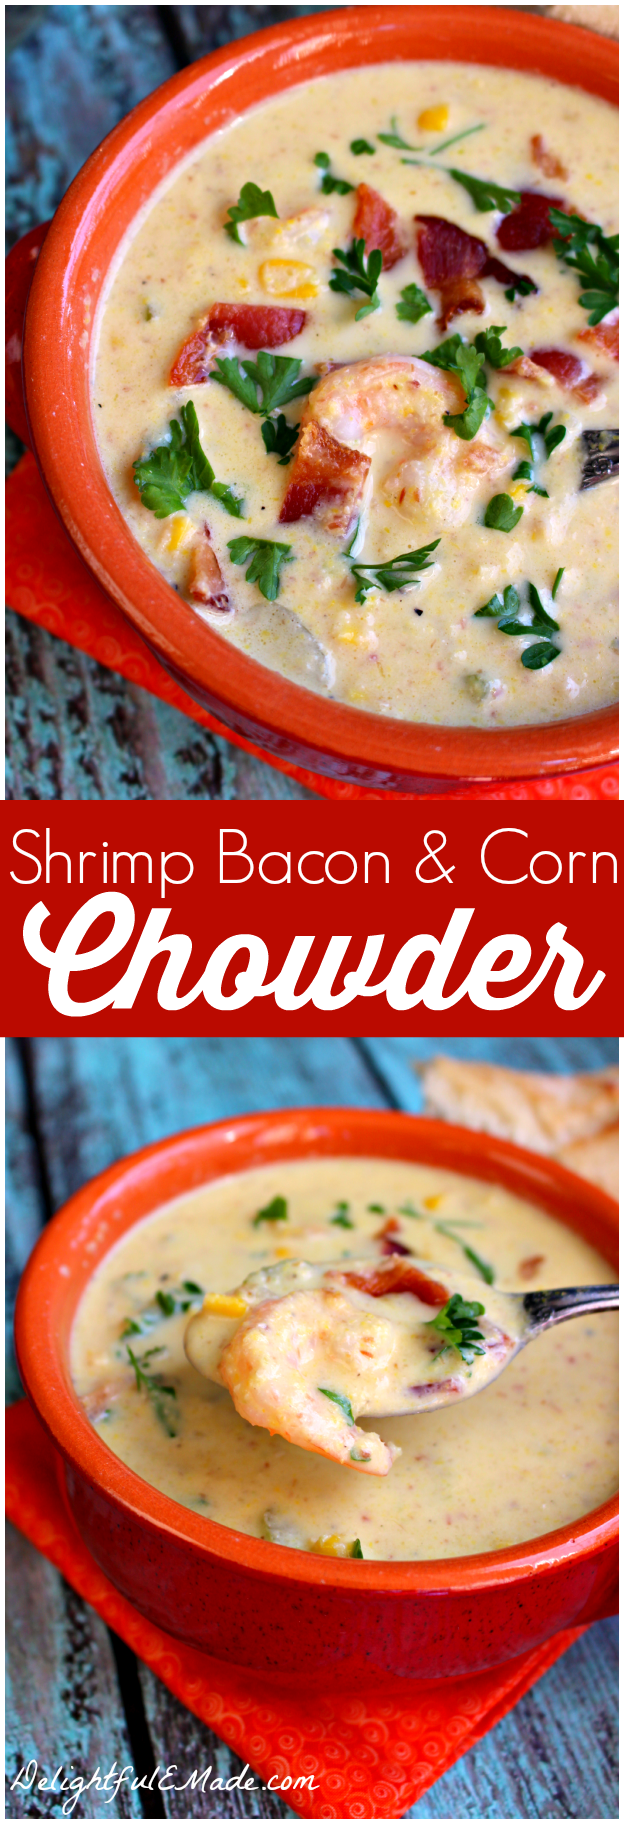 Shrimp, Bacon, and Corn Chowder. Chunky and creamy this amazingly delicious soup is packed with flavor! The ultimate comfort food!